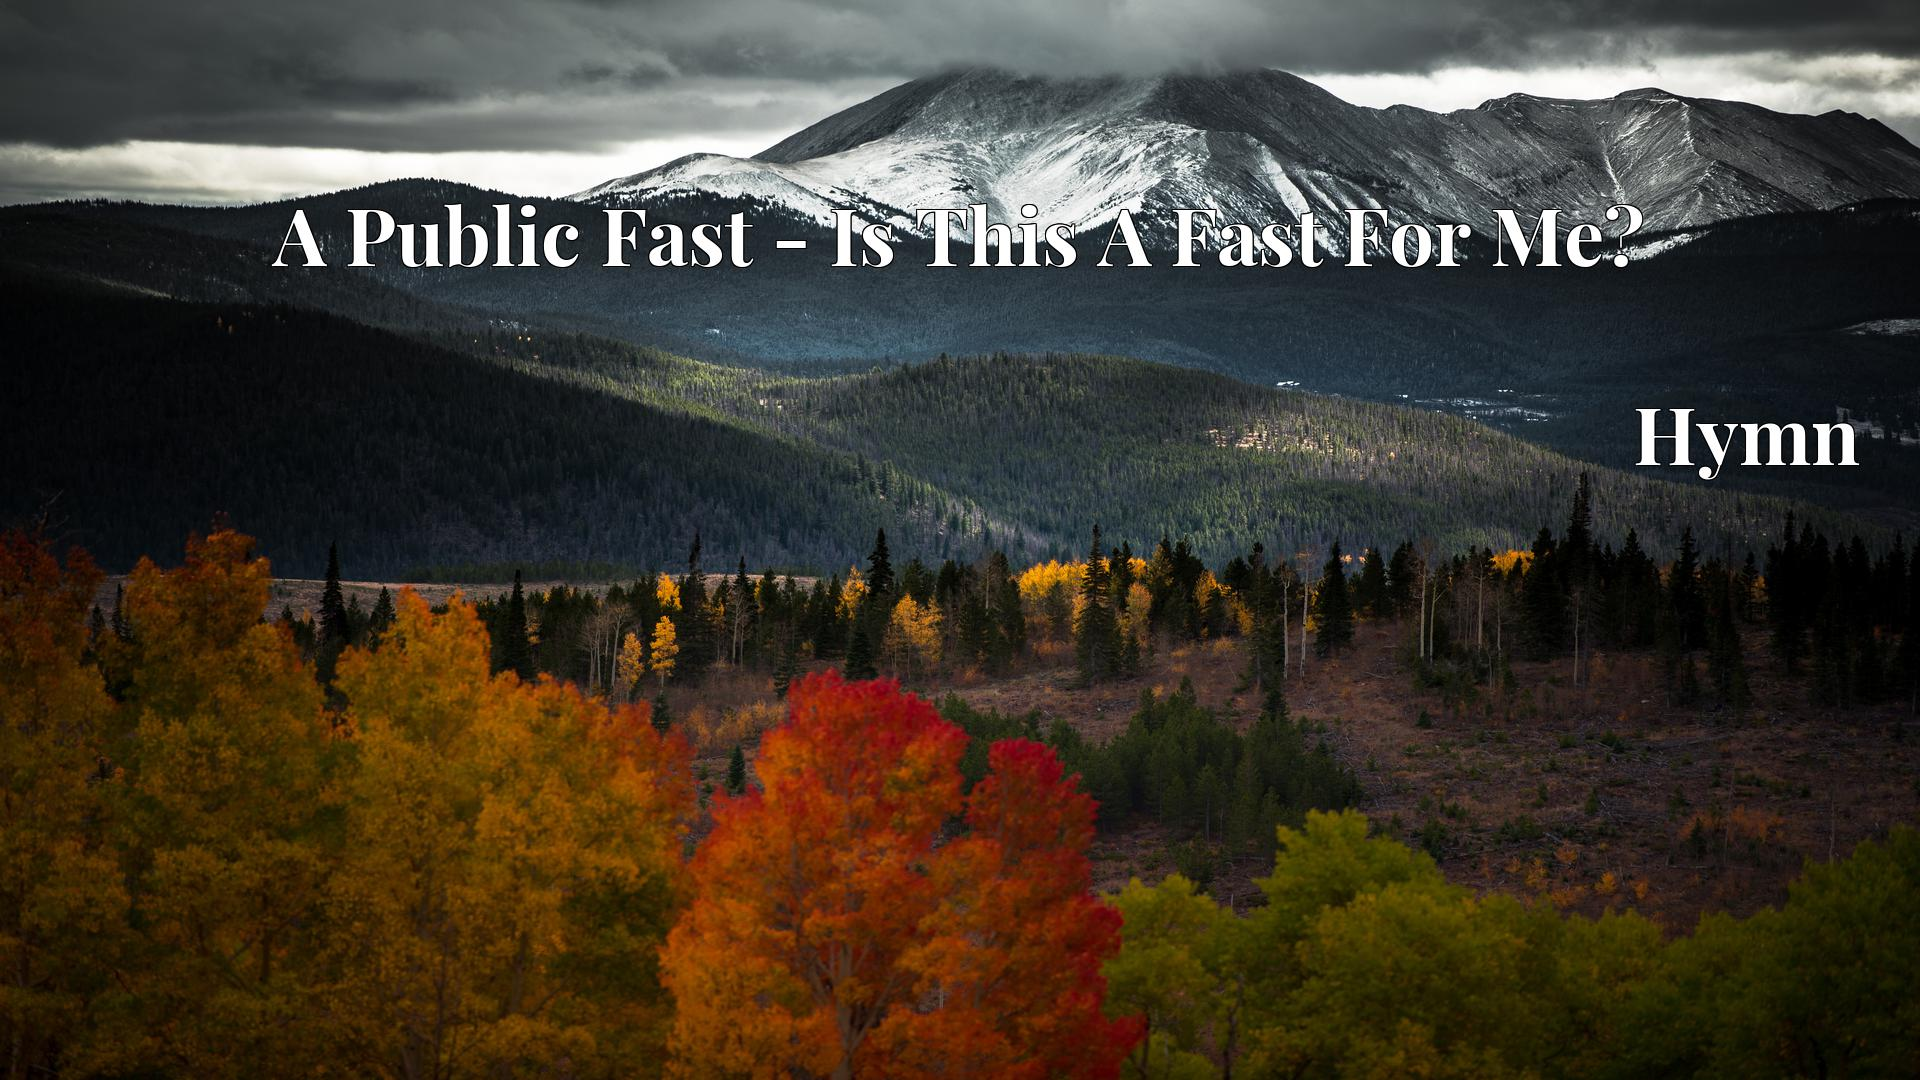 A Public Fast - Is This A Fast For Me? - Hymn